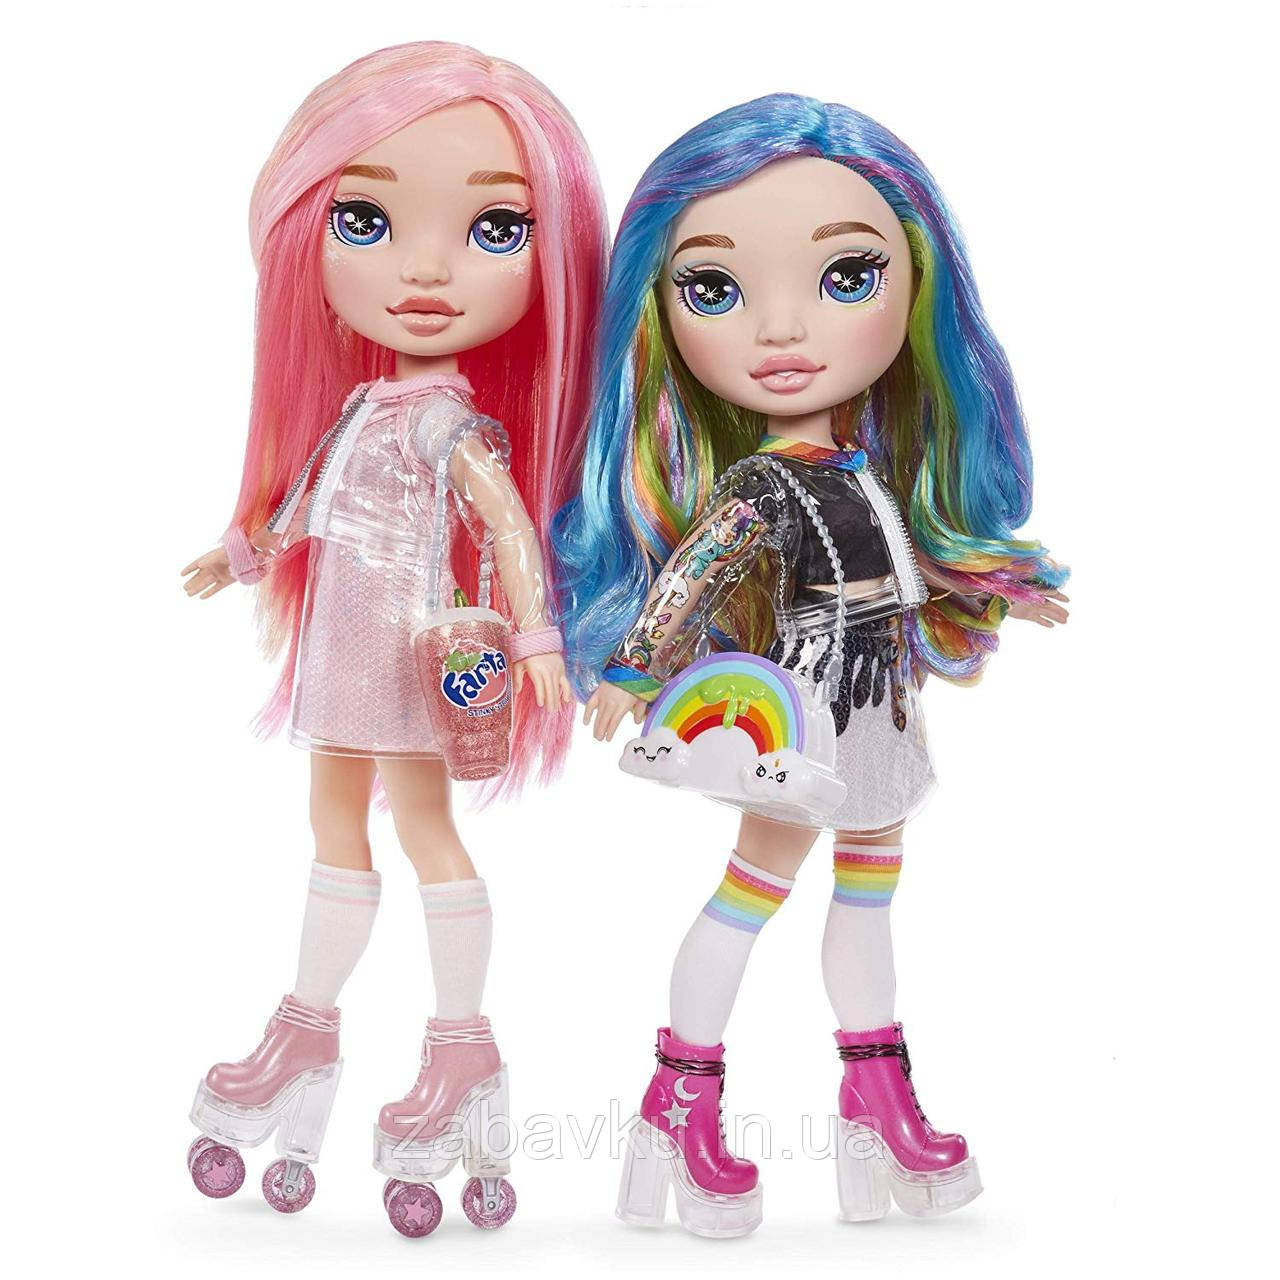 Лялька пупсі Poopsie Rainbow Surprise Dolls Rainbow Dream Or Pixie Rose